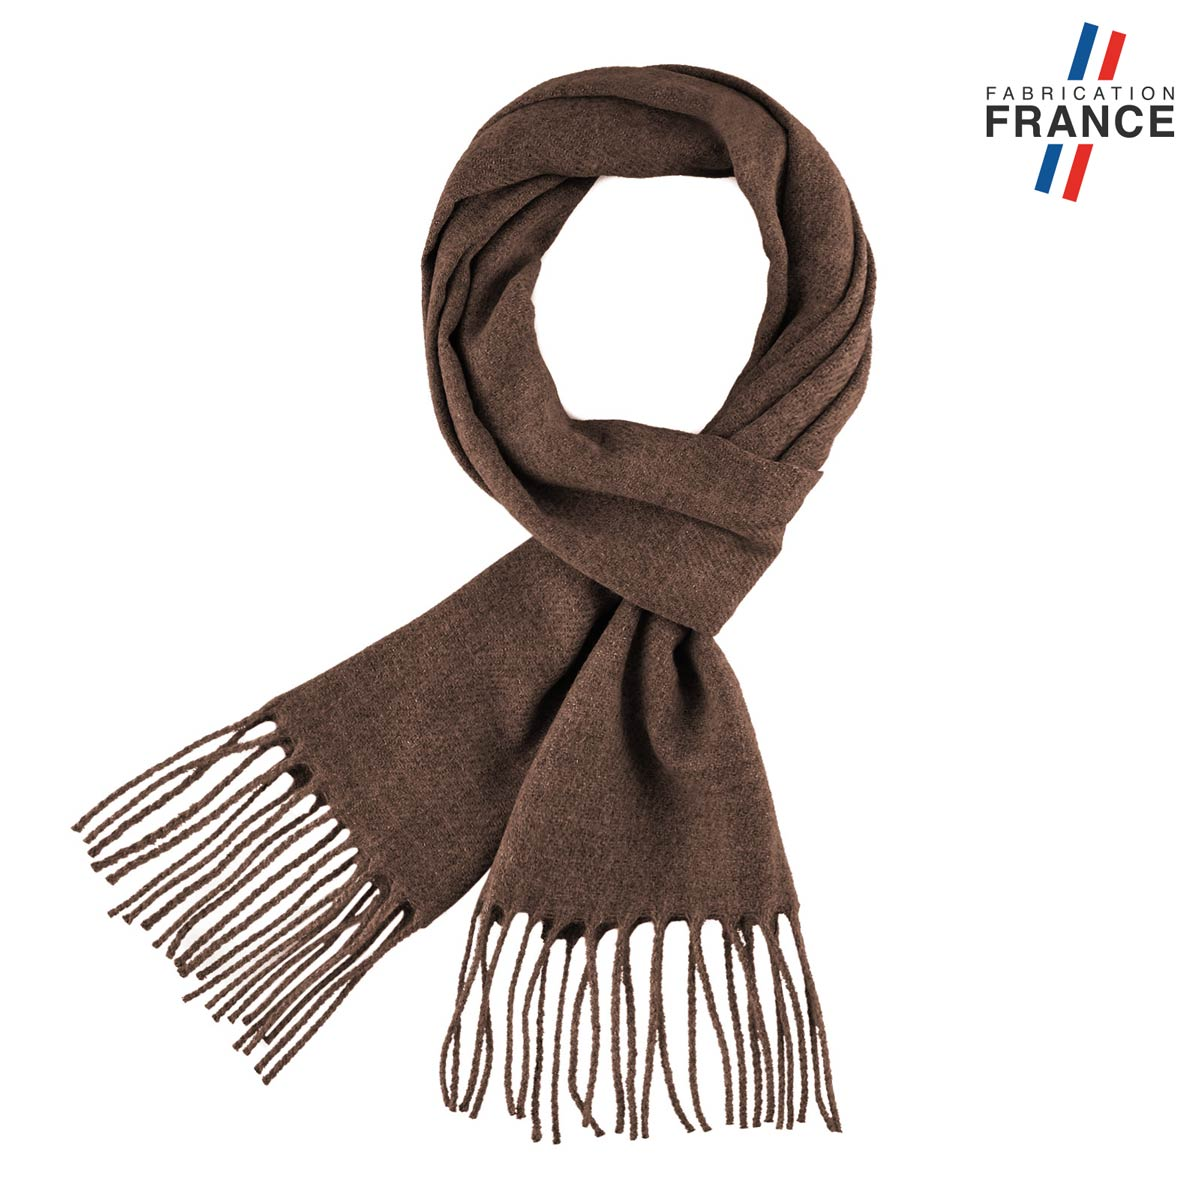 AT-06574_F12-1FR_Echarpe-franges-taupe-chine-fabrication-francaise